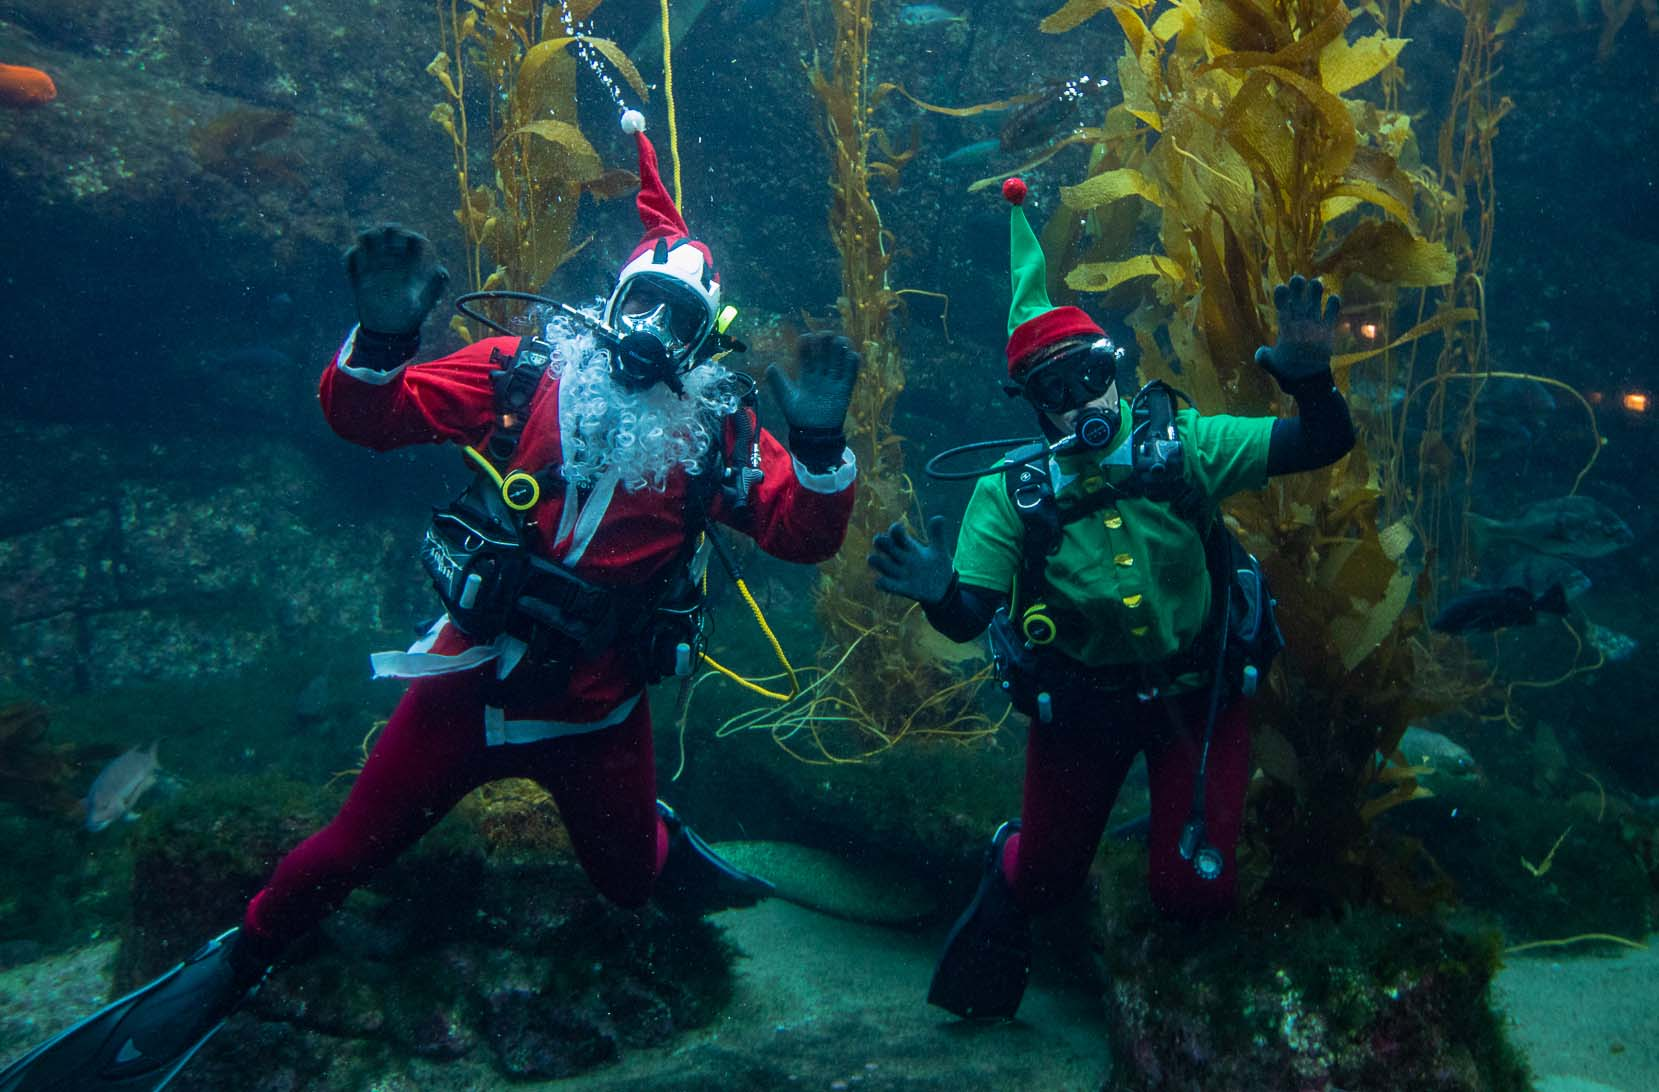 Seas 'n' Greetings — Dec. 1-31